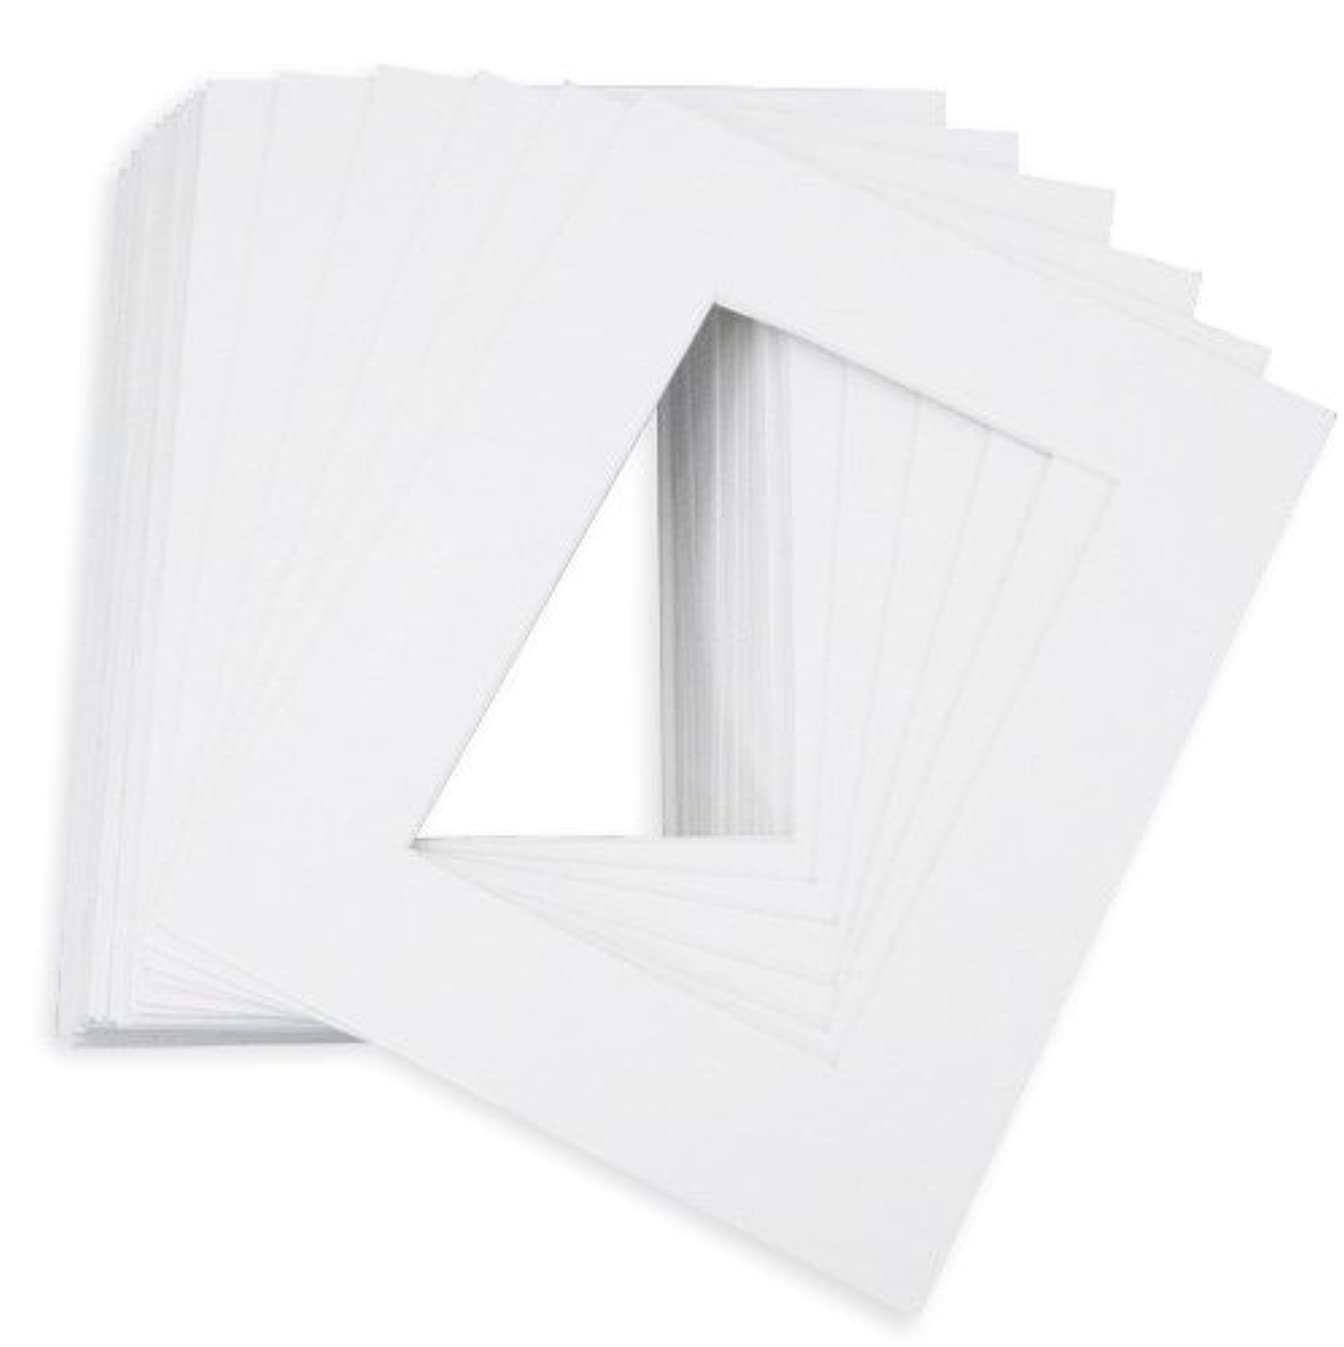 Golden State Art, Pack of 10 8x10 White Picture Mats with White Core Bevel Cut for 5x7 Pictures